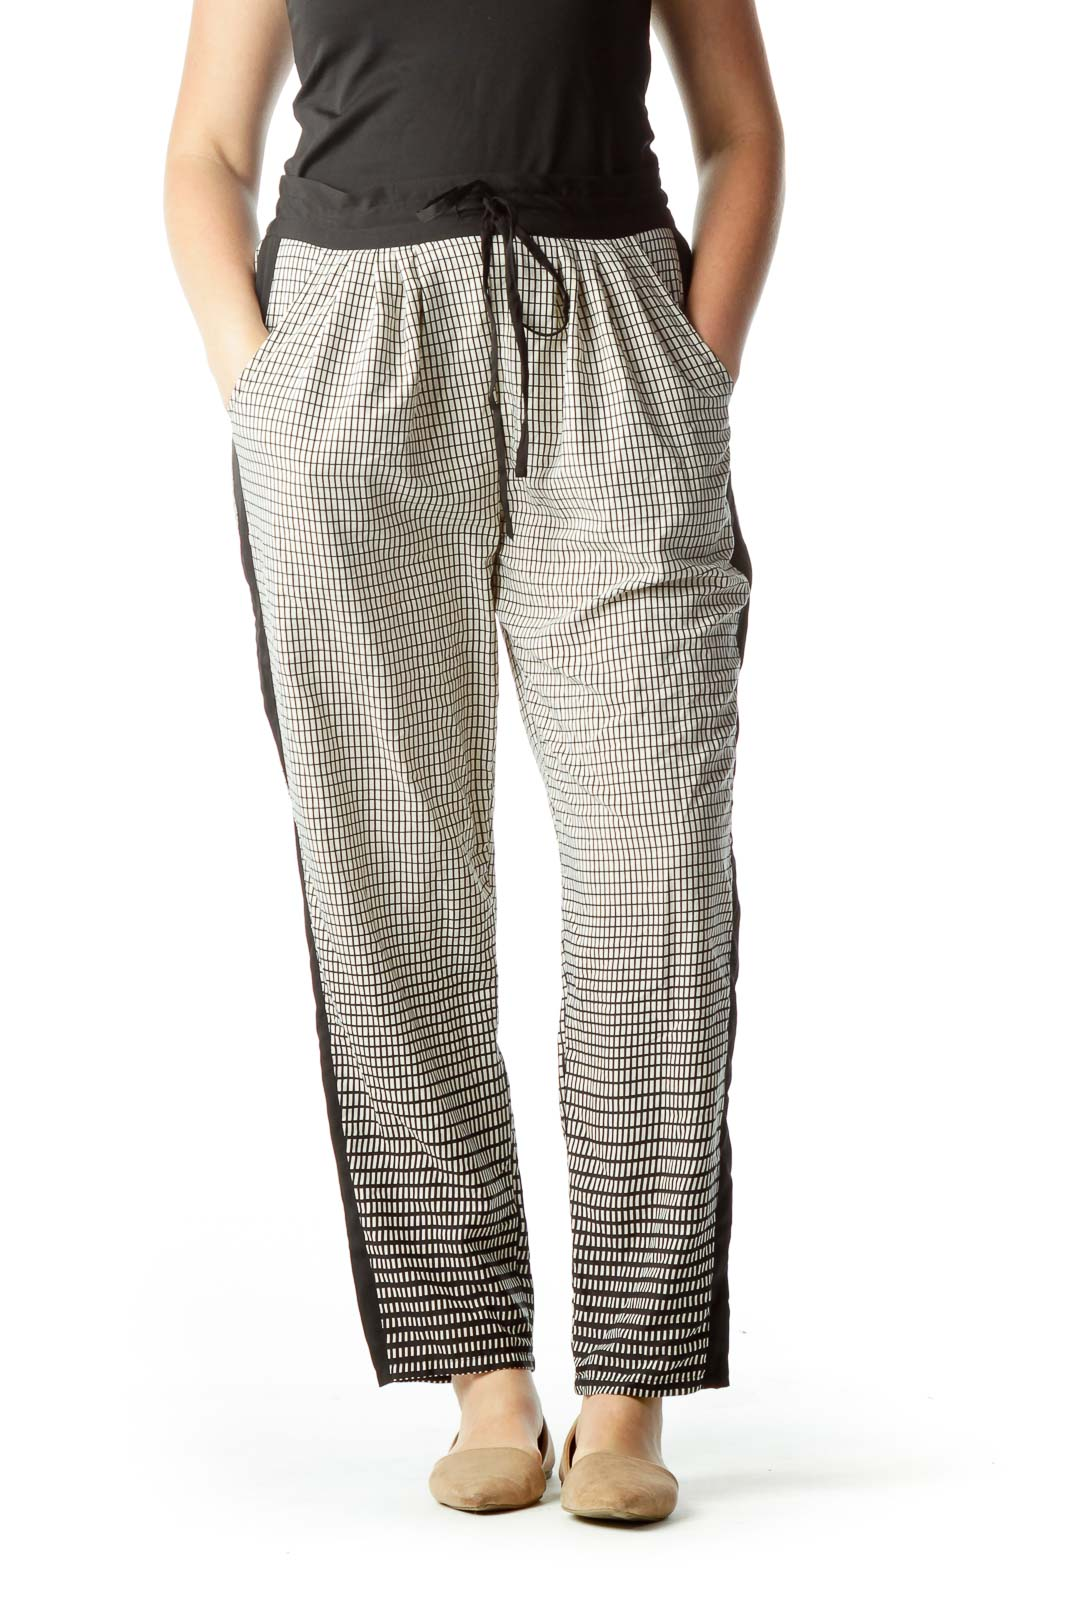 Black Cream Geometric Print Pants